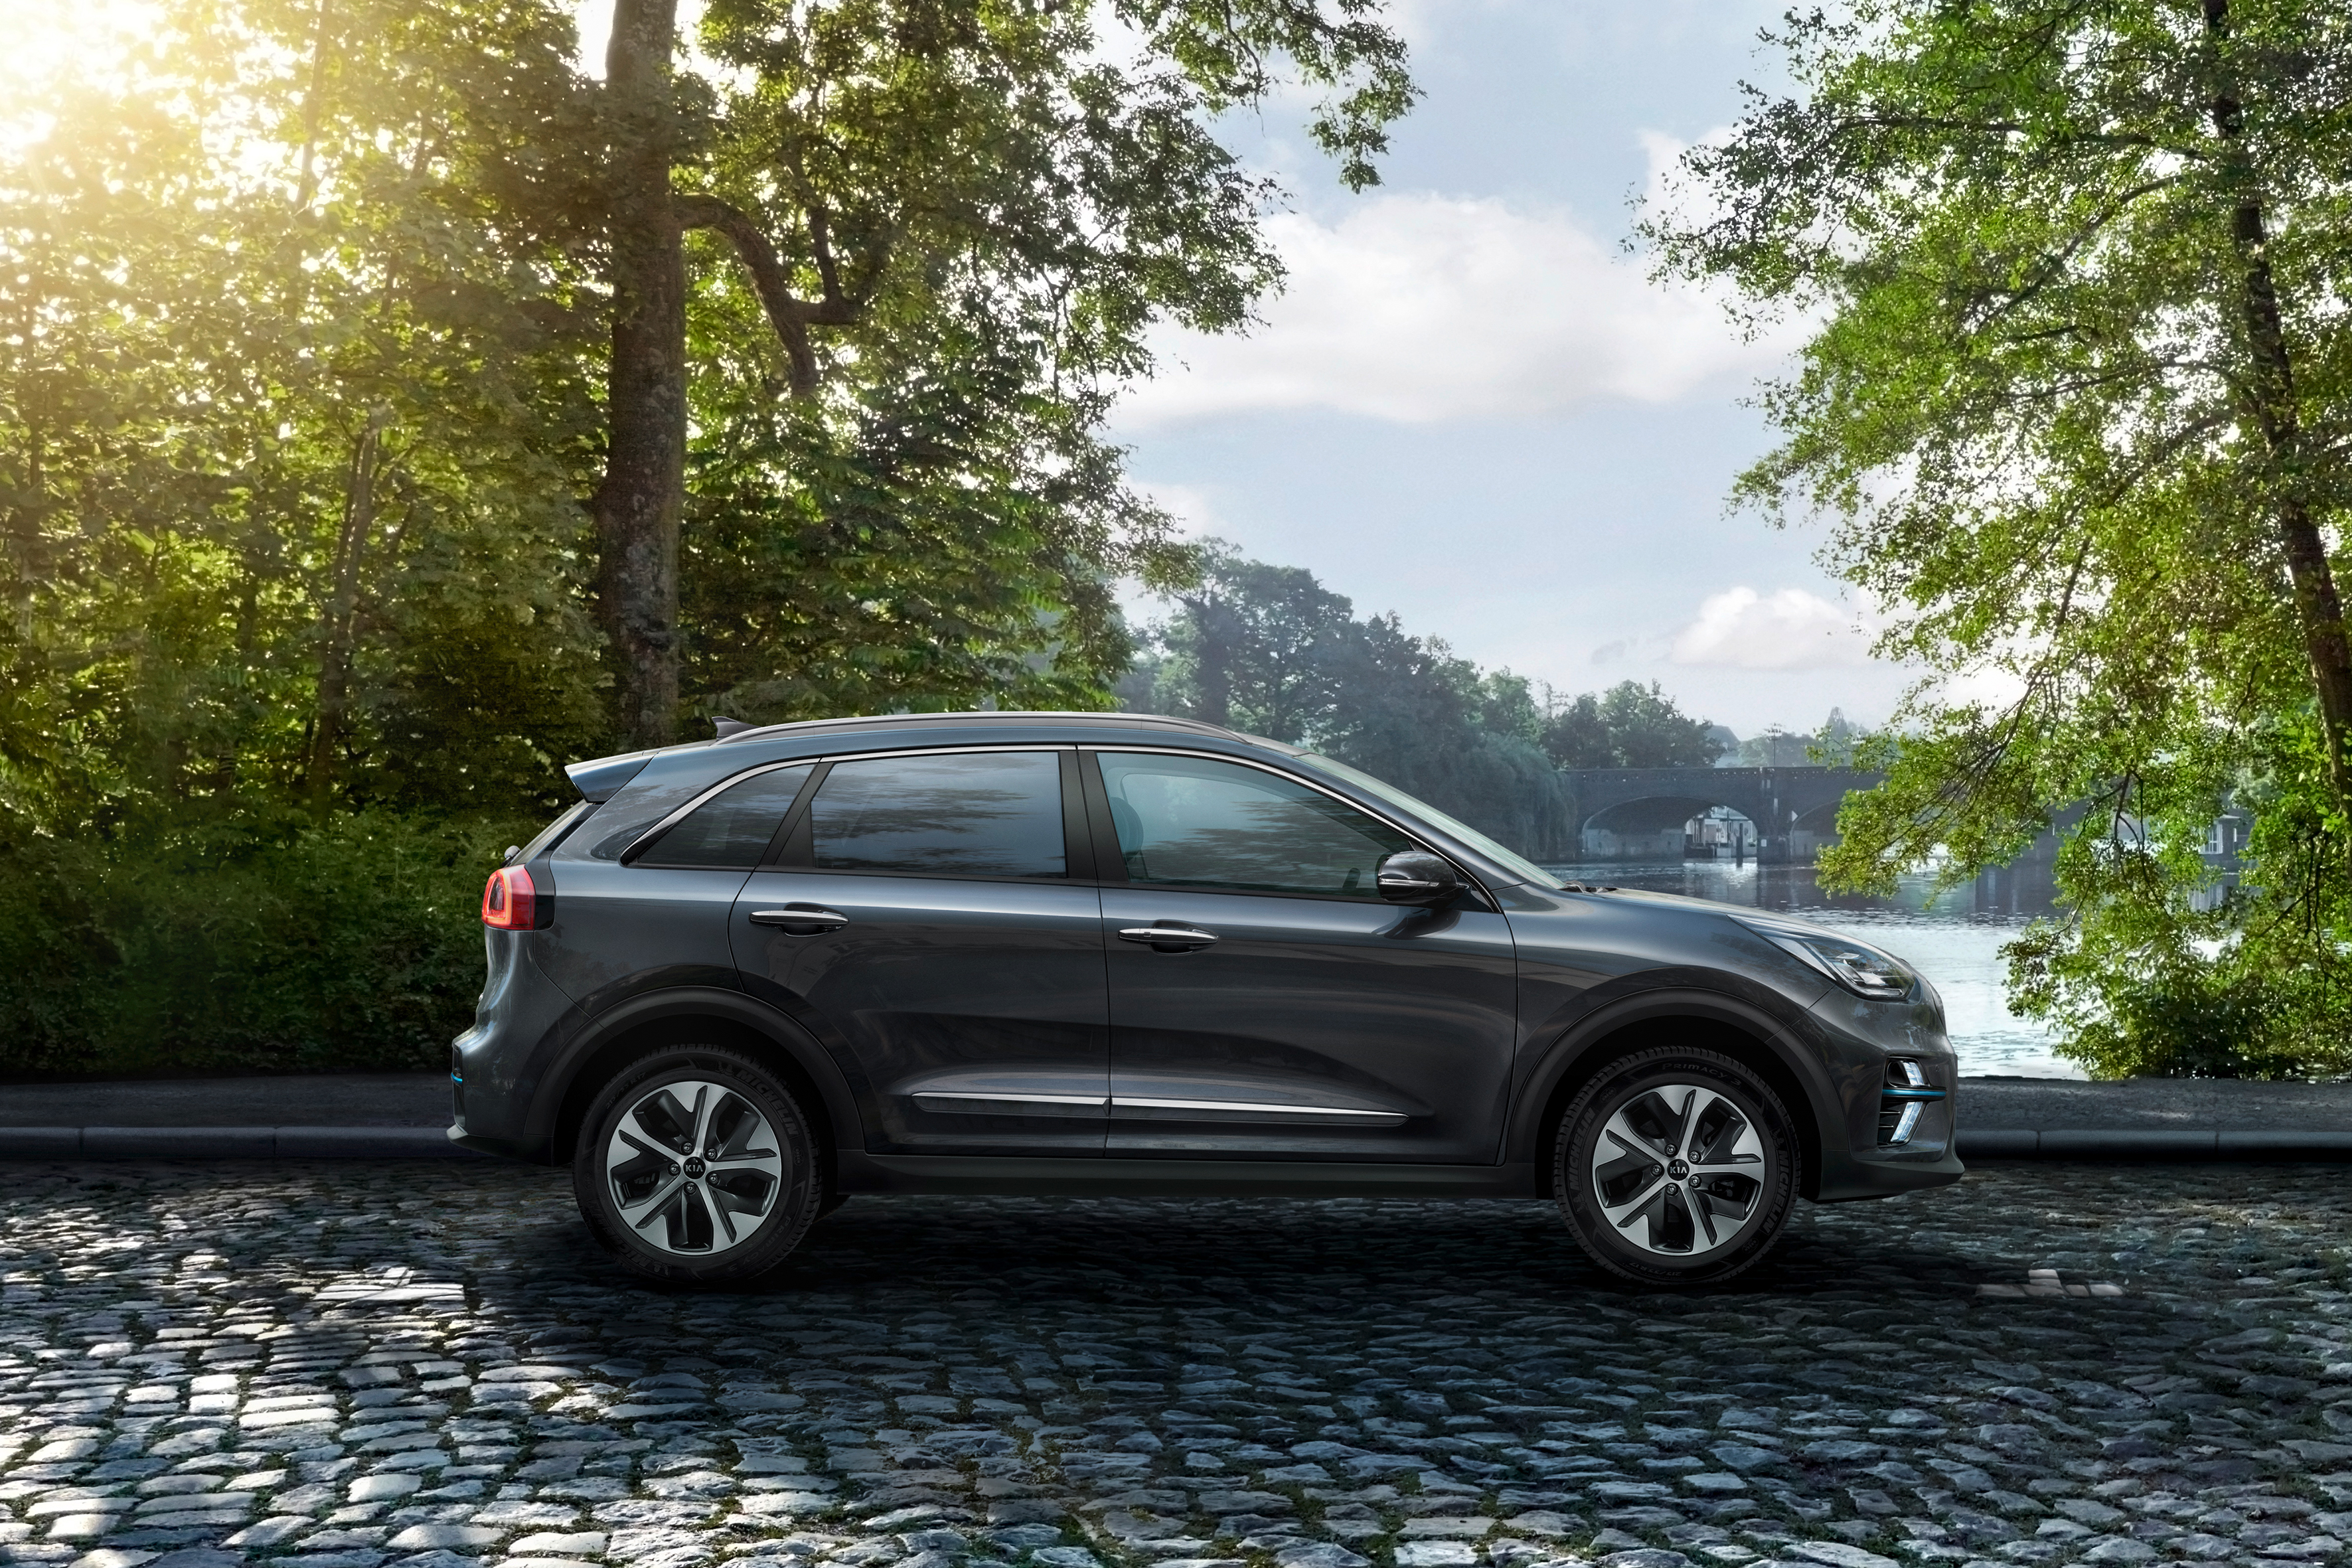 Kia Is Finally Sharing More Details About Its Upcoming All Electric  Crossover U2014 The 2019 Kia E Niro U2014 That Made Its Debut In Korea Earlier This  Year.